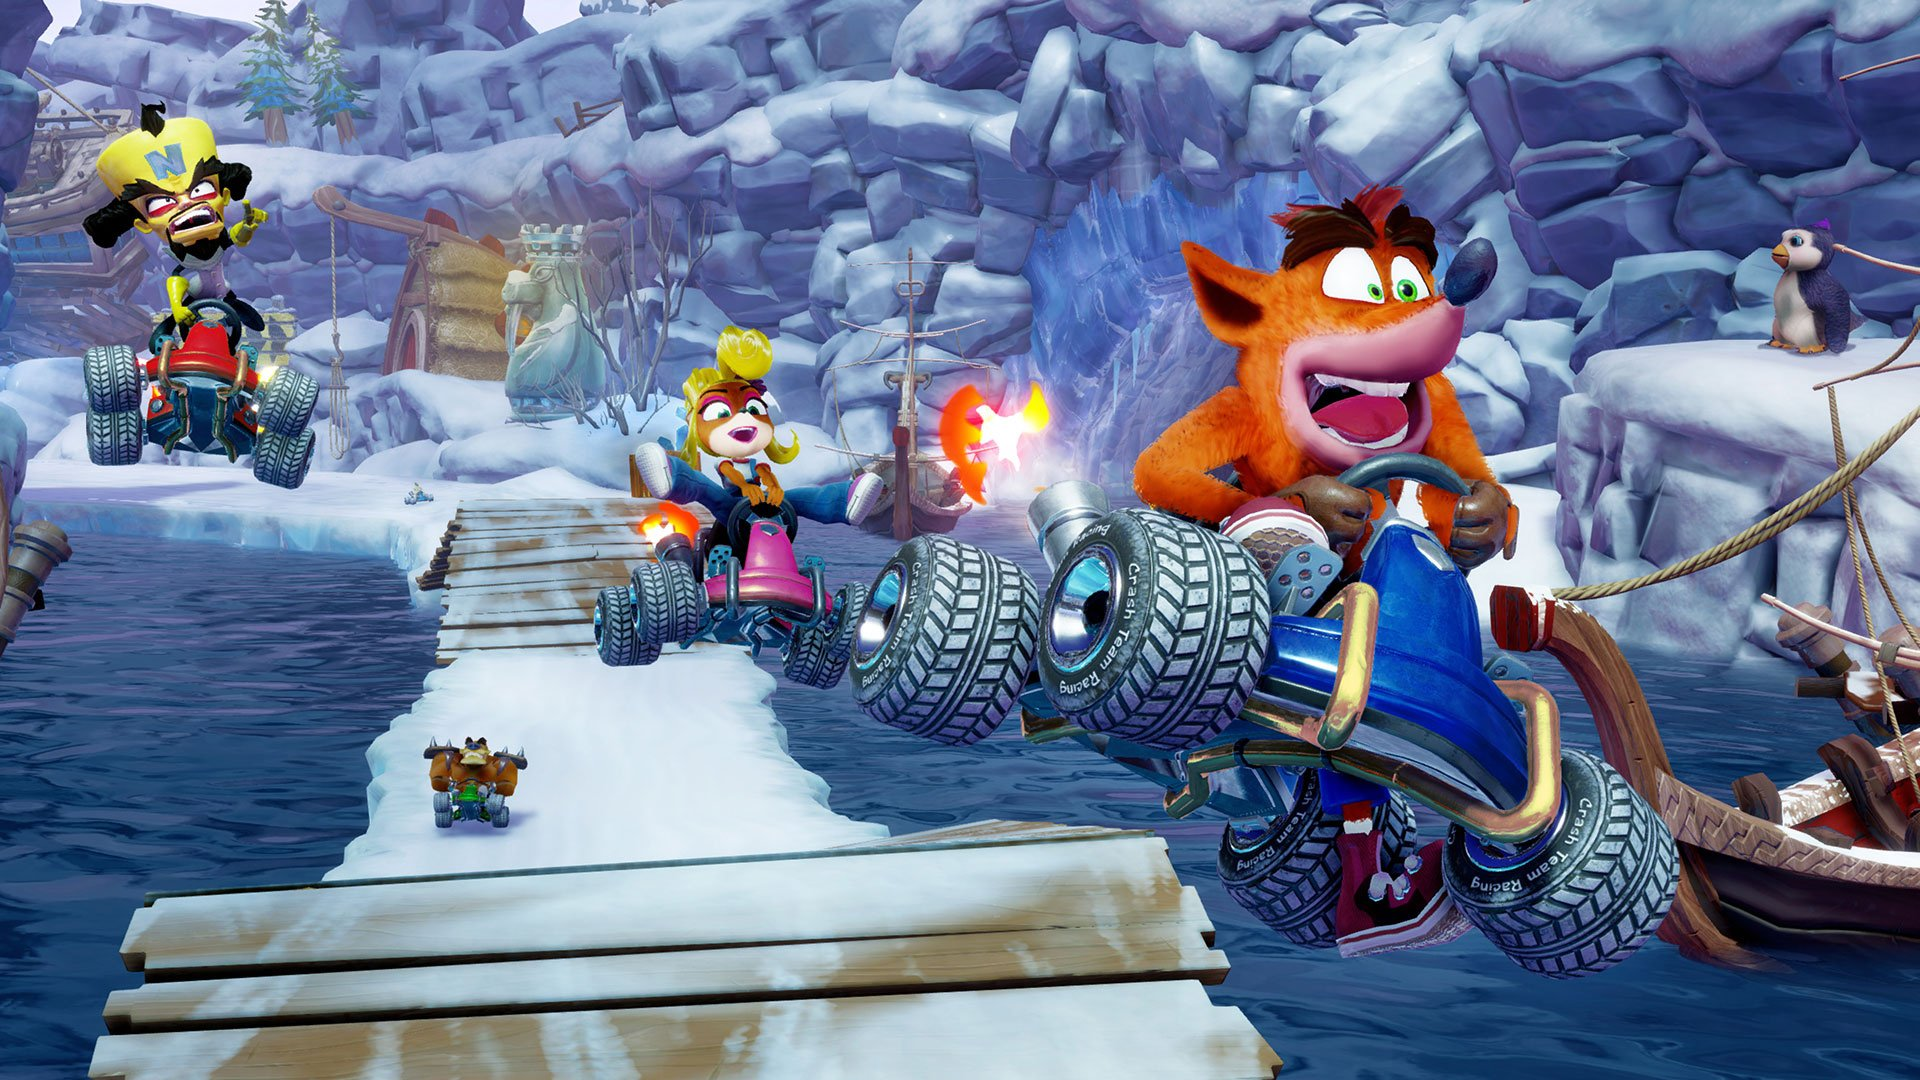 CTR Nitro-Fueled Cheats - All Cheat Codes, What They Do, and